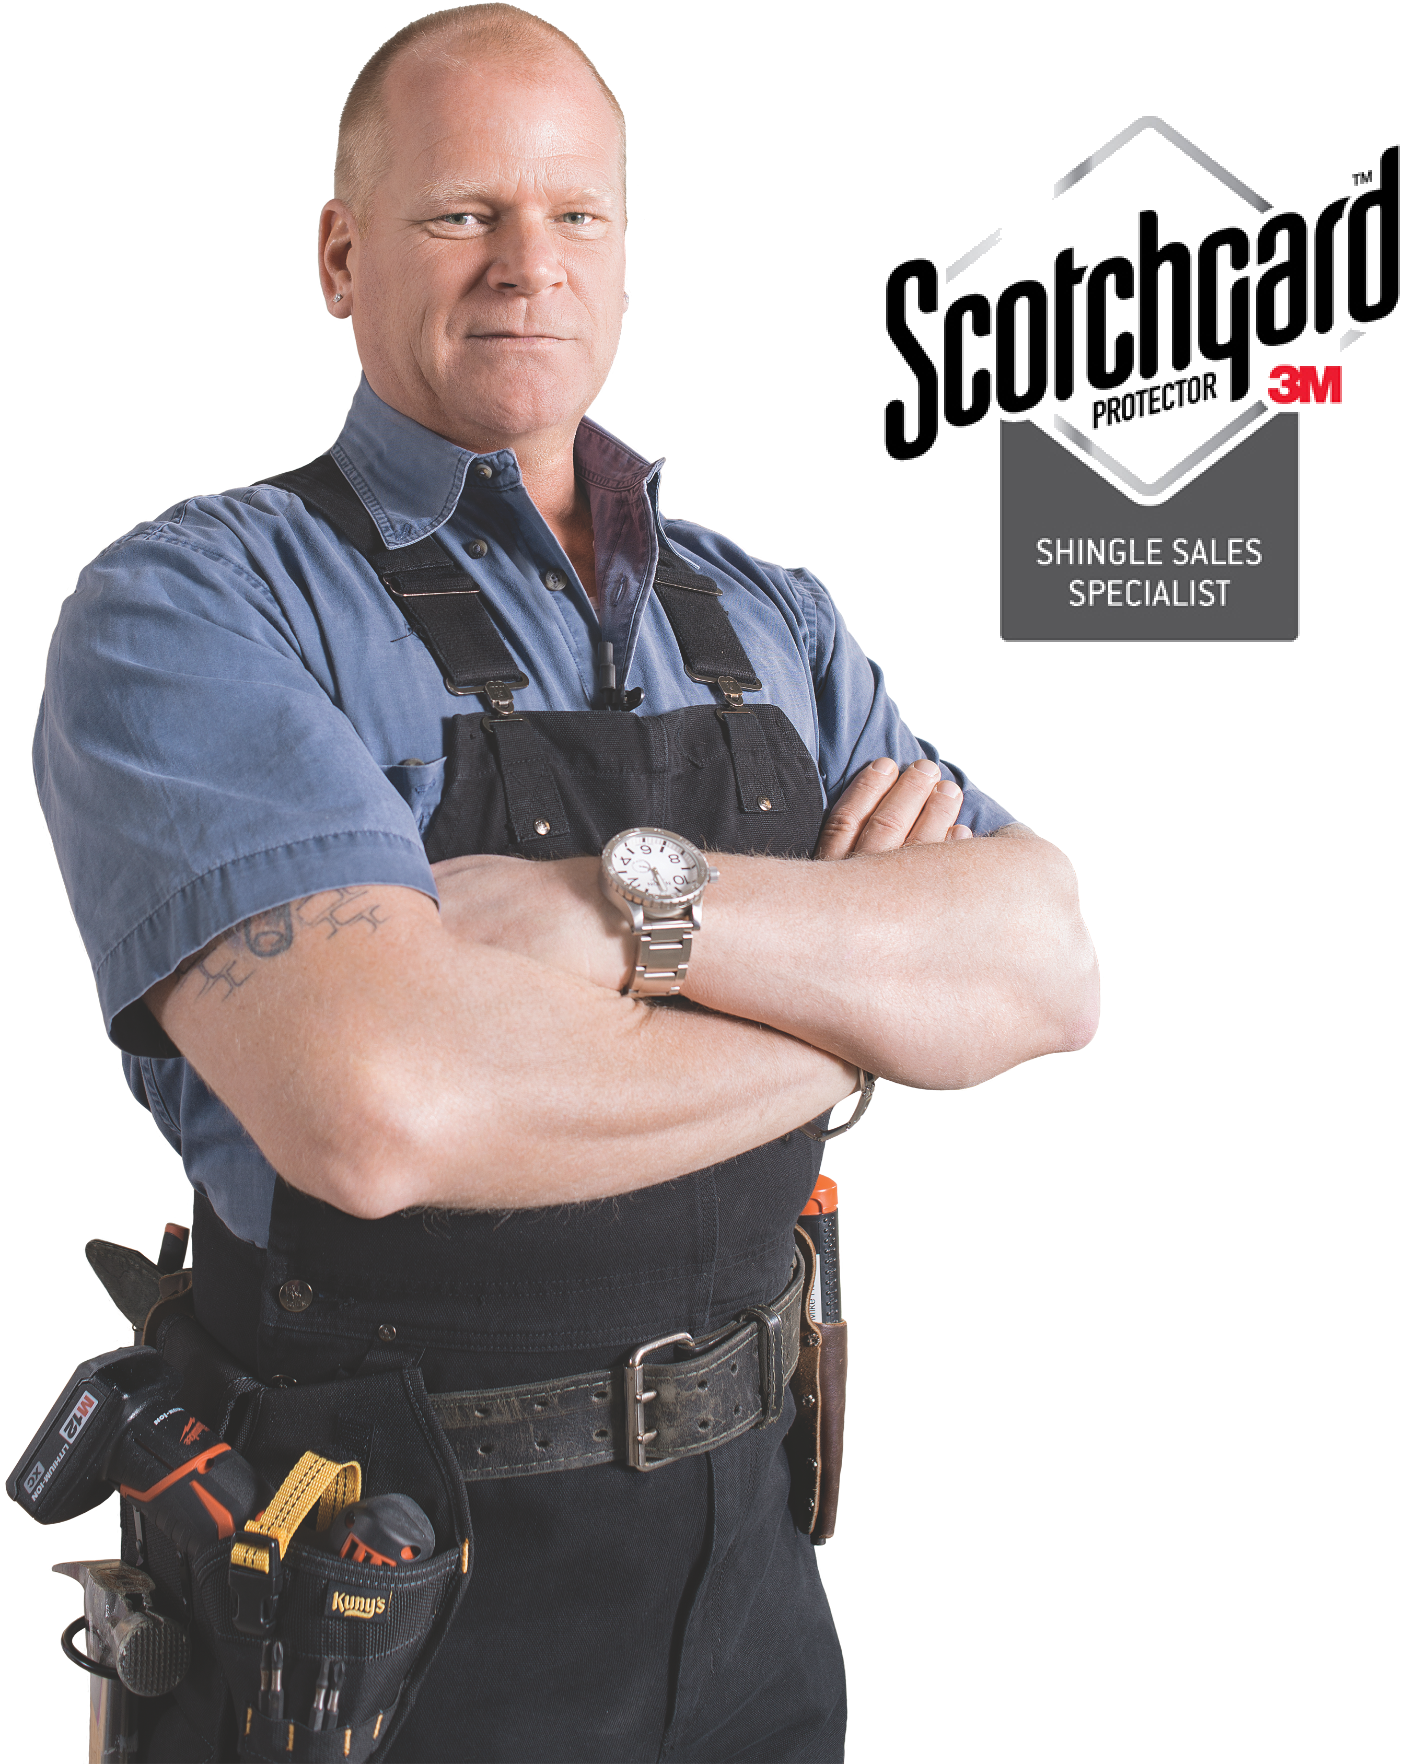 Mike Holmes - Shingle Sales Specialist